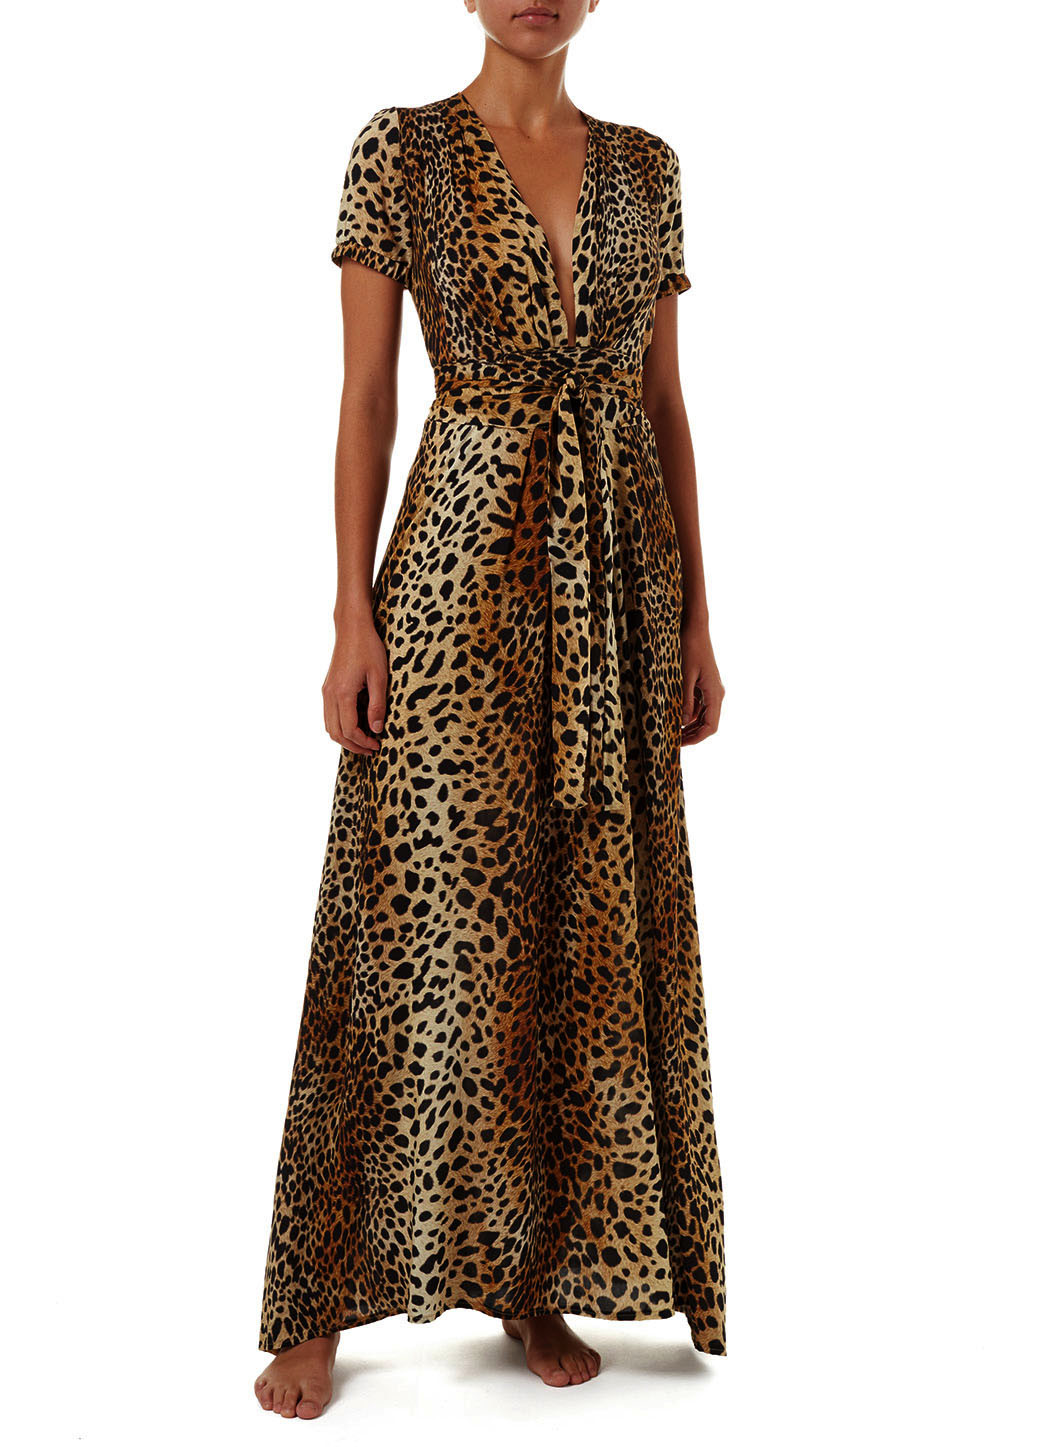 lou-cheetah-vneck-belted-maxi-dress-2019-f